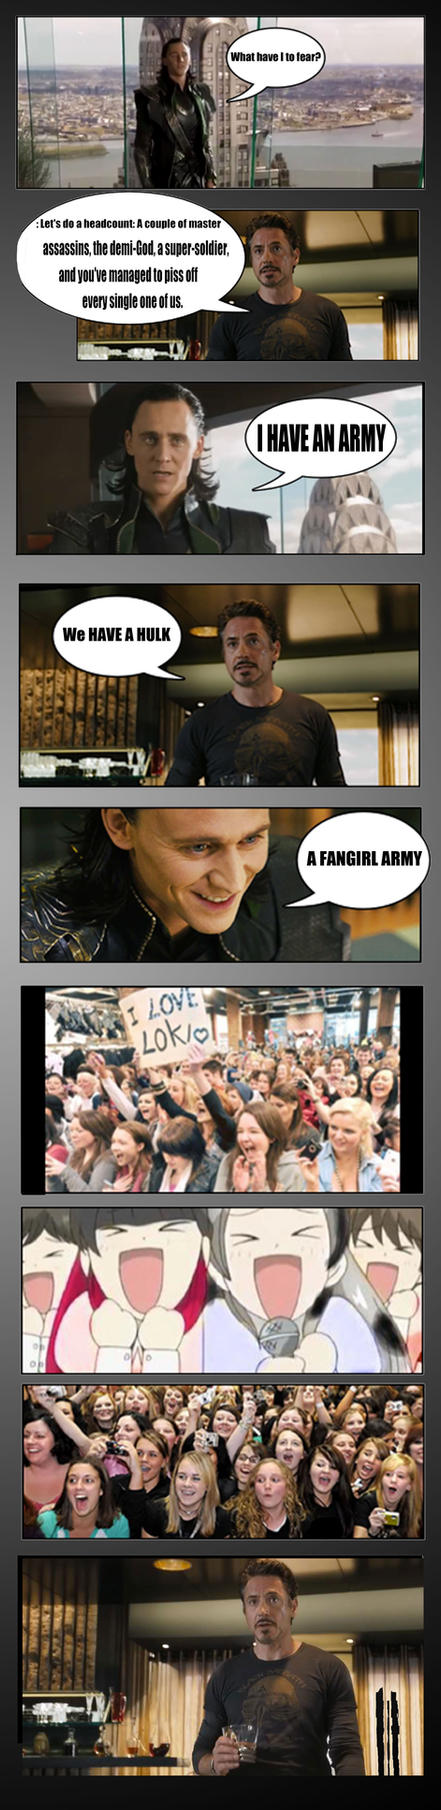 FANGIRL ARMY by TaniaDck1987